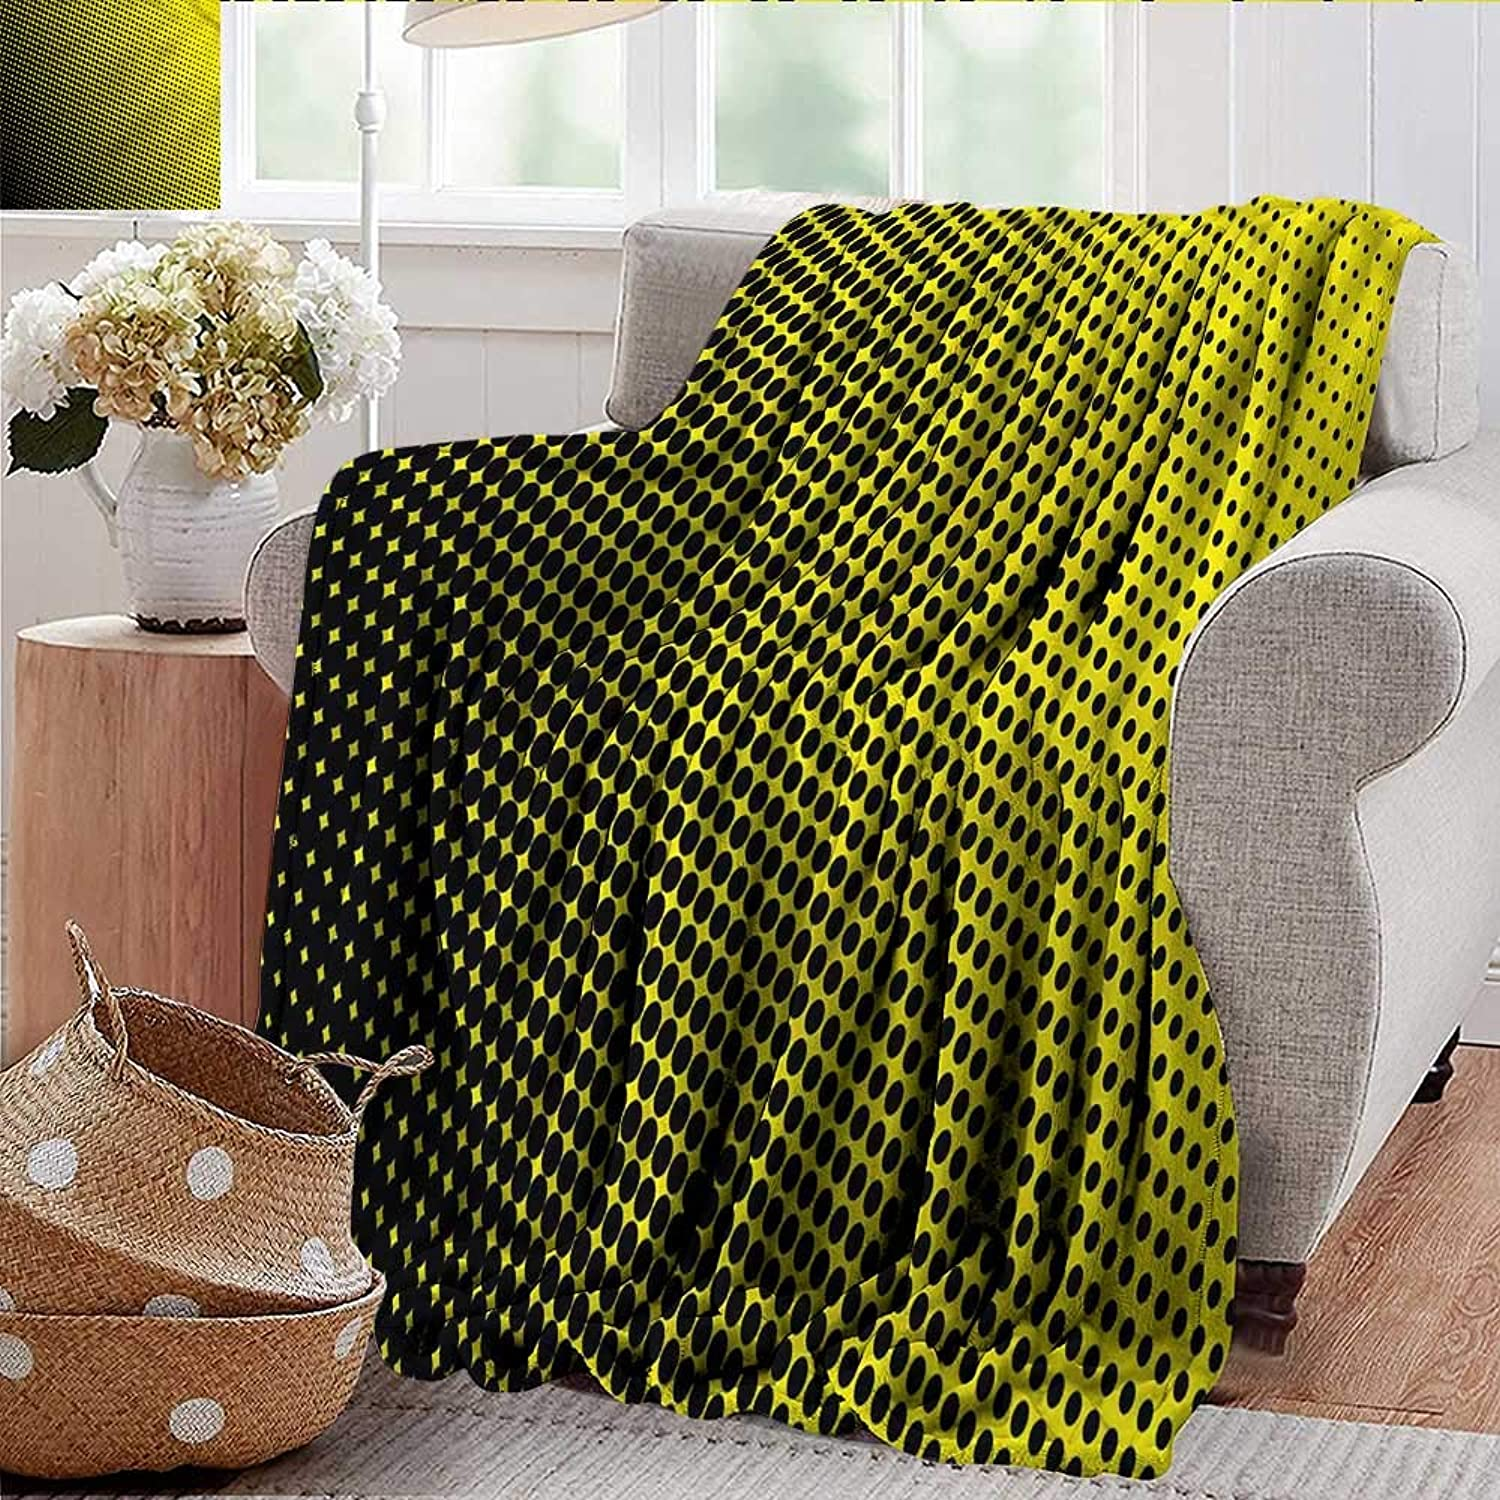 Xaviera Doherty Weighted Blanket for Kids Yellow,Yellow Themed with Dots Soft Summer Cooling Lightweight Bed Blanket 50 x60